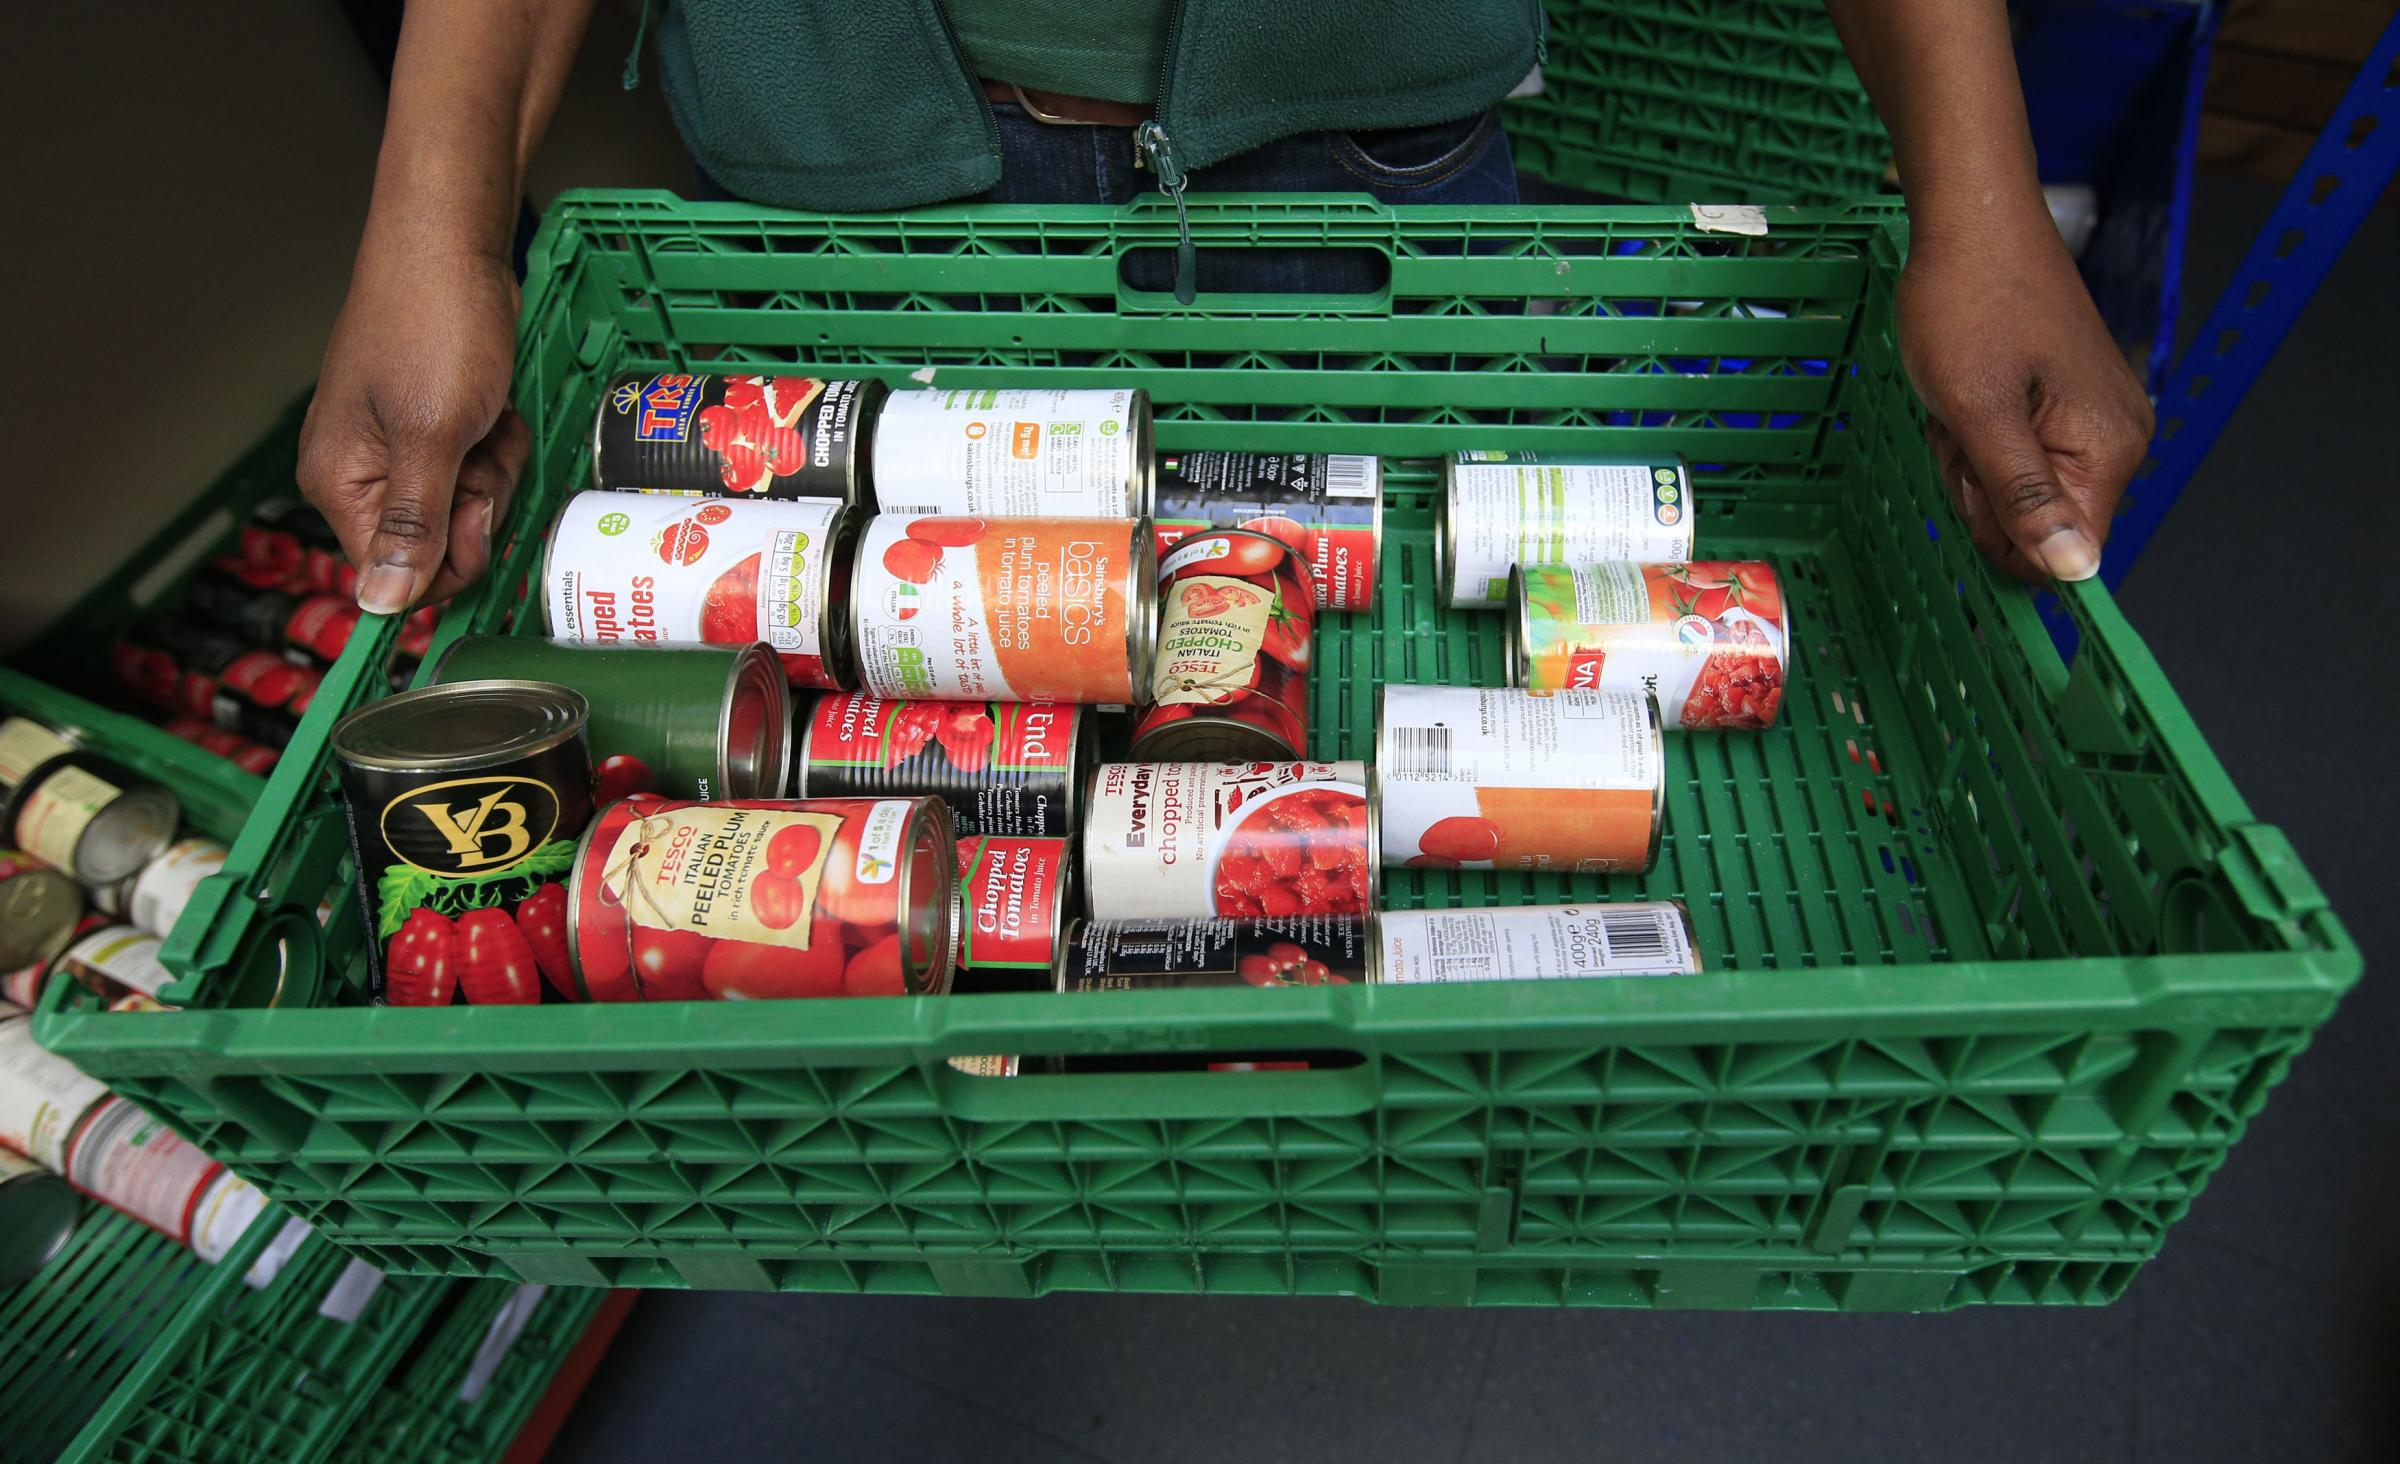 Figures show there is a huge demand for Cardigan Foodbank's services. Picture: Jonathan Brady/PA Wire.